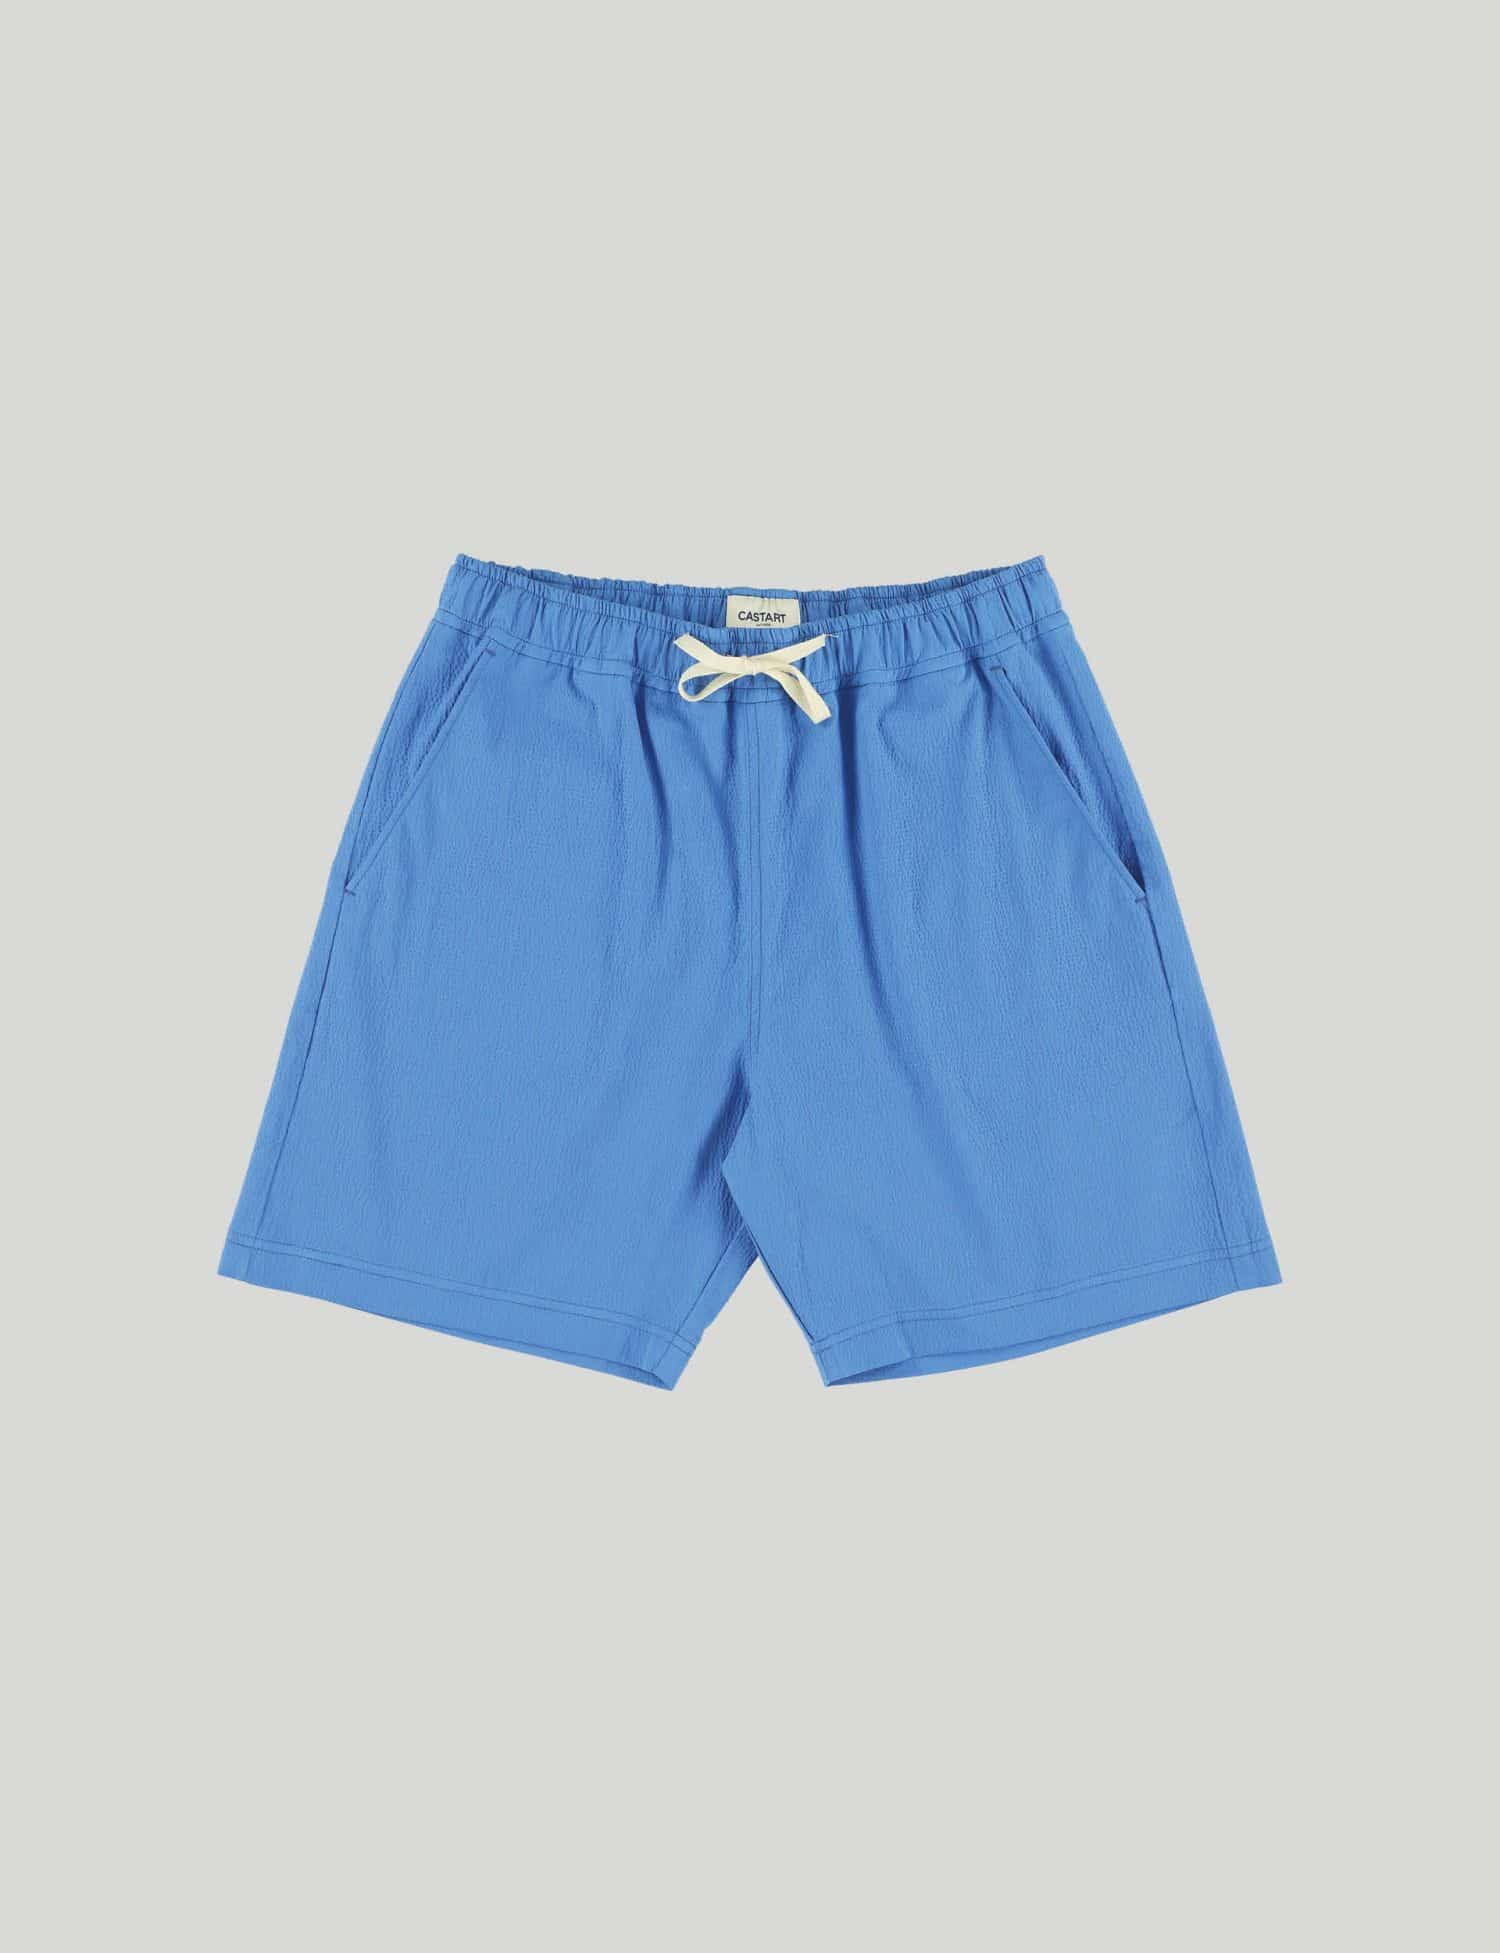 Castart - Tiger Tooth Shorts - French Blue